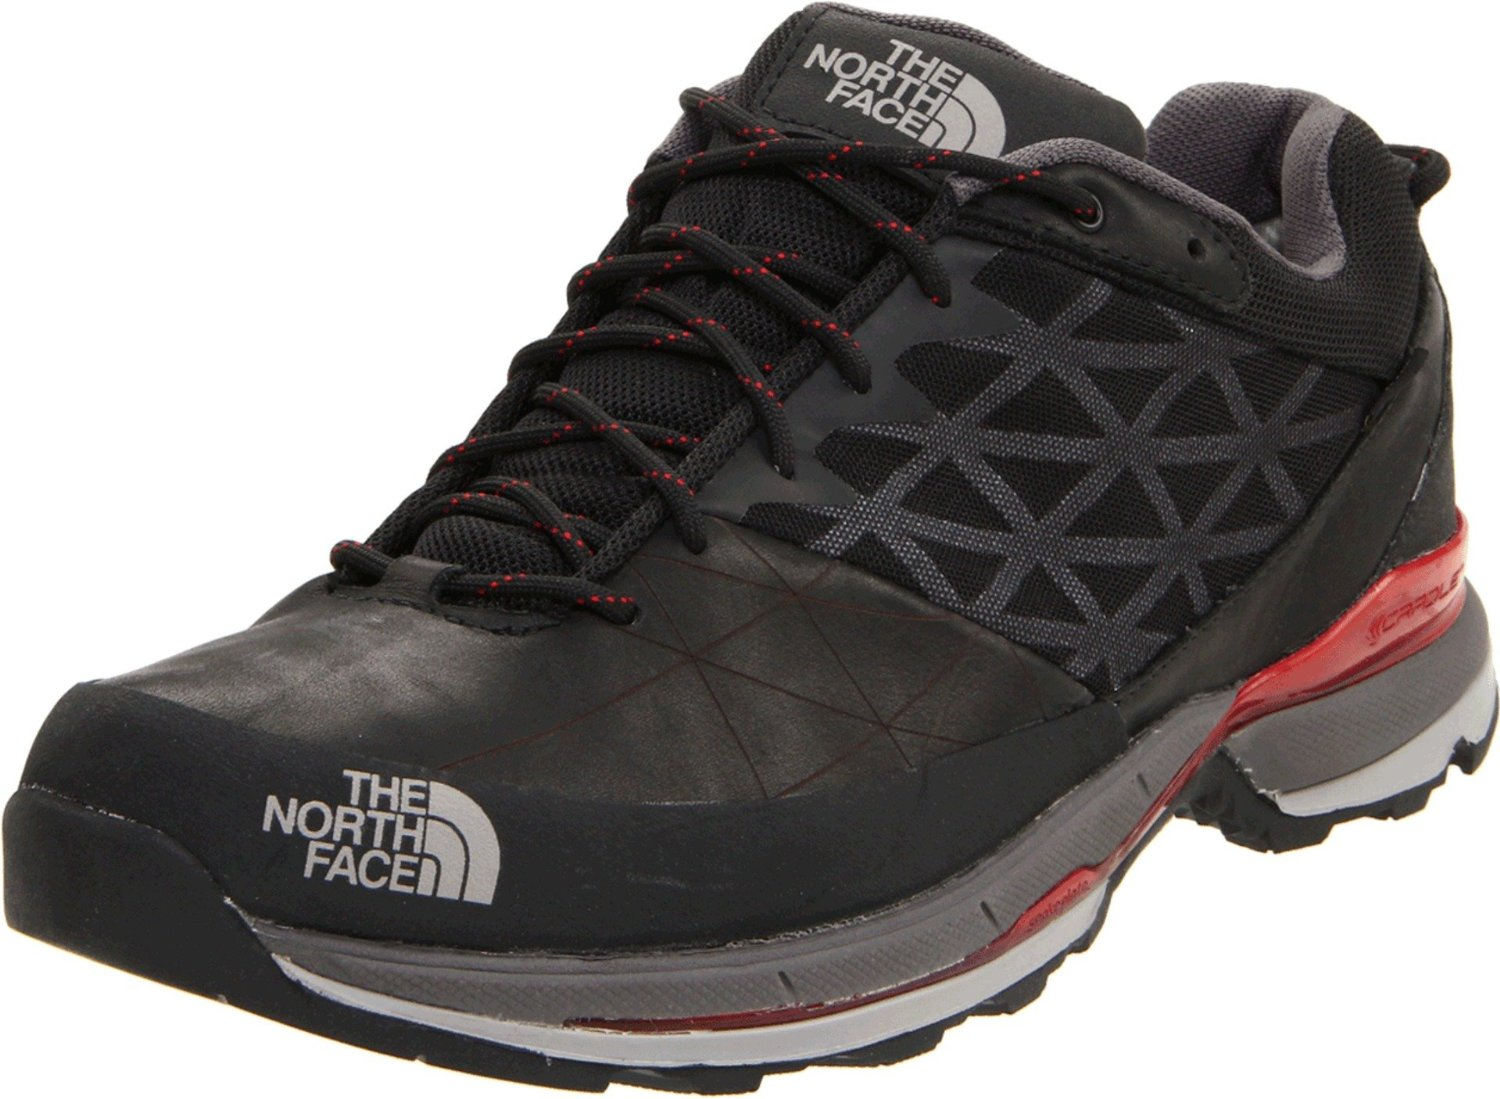 North Face Hiking Shoes Sizing